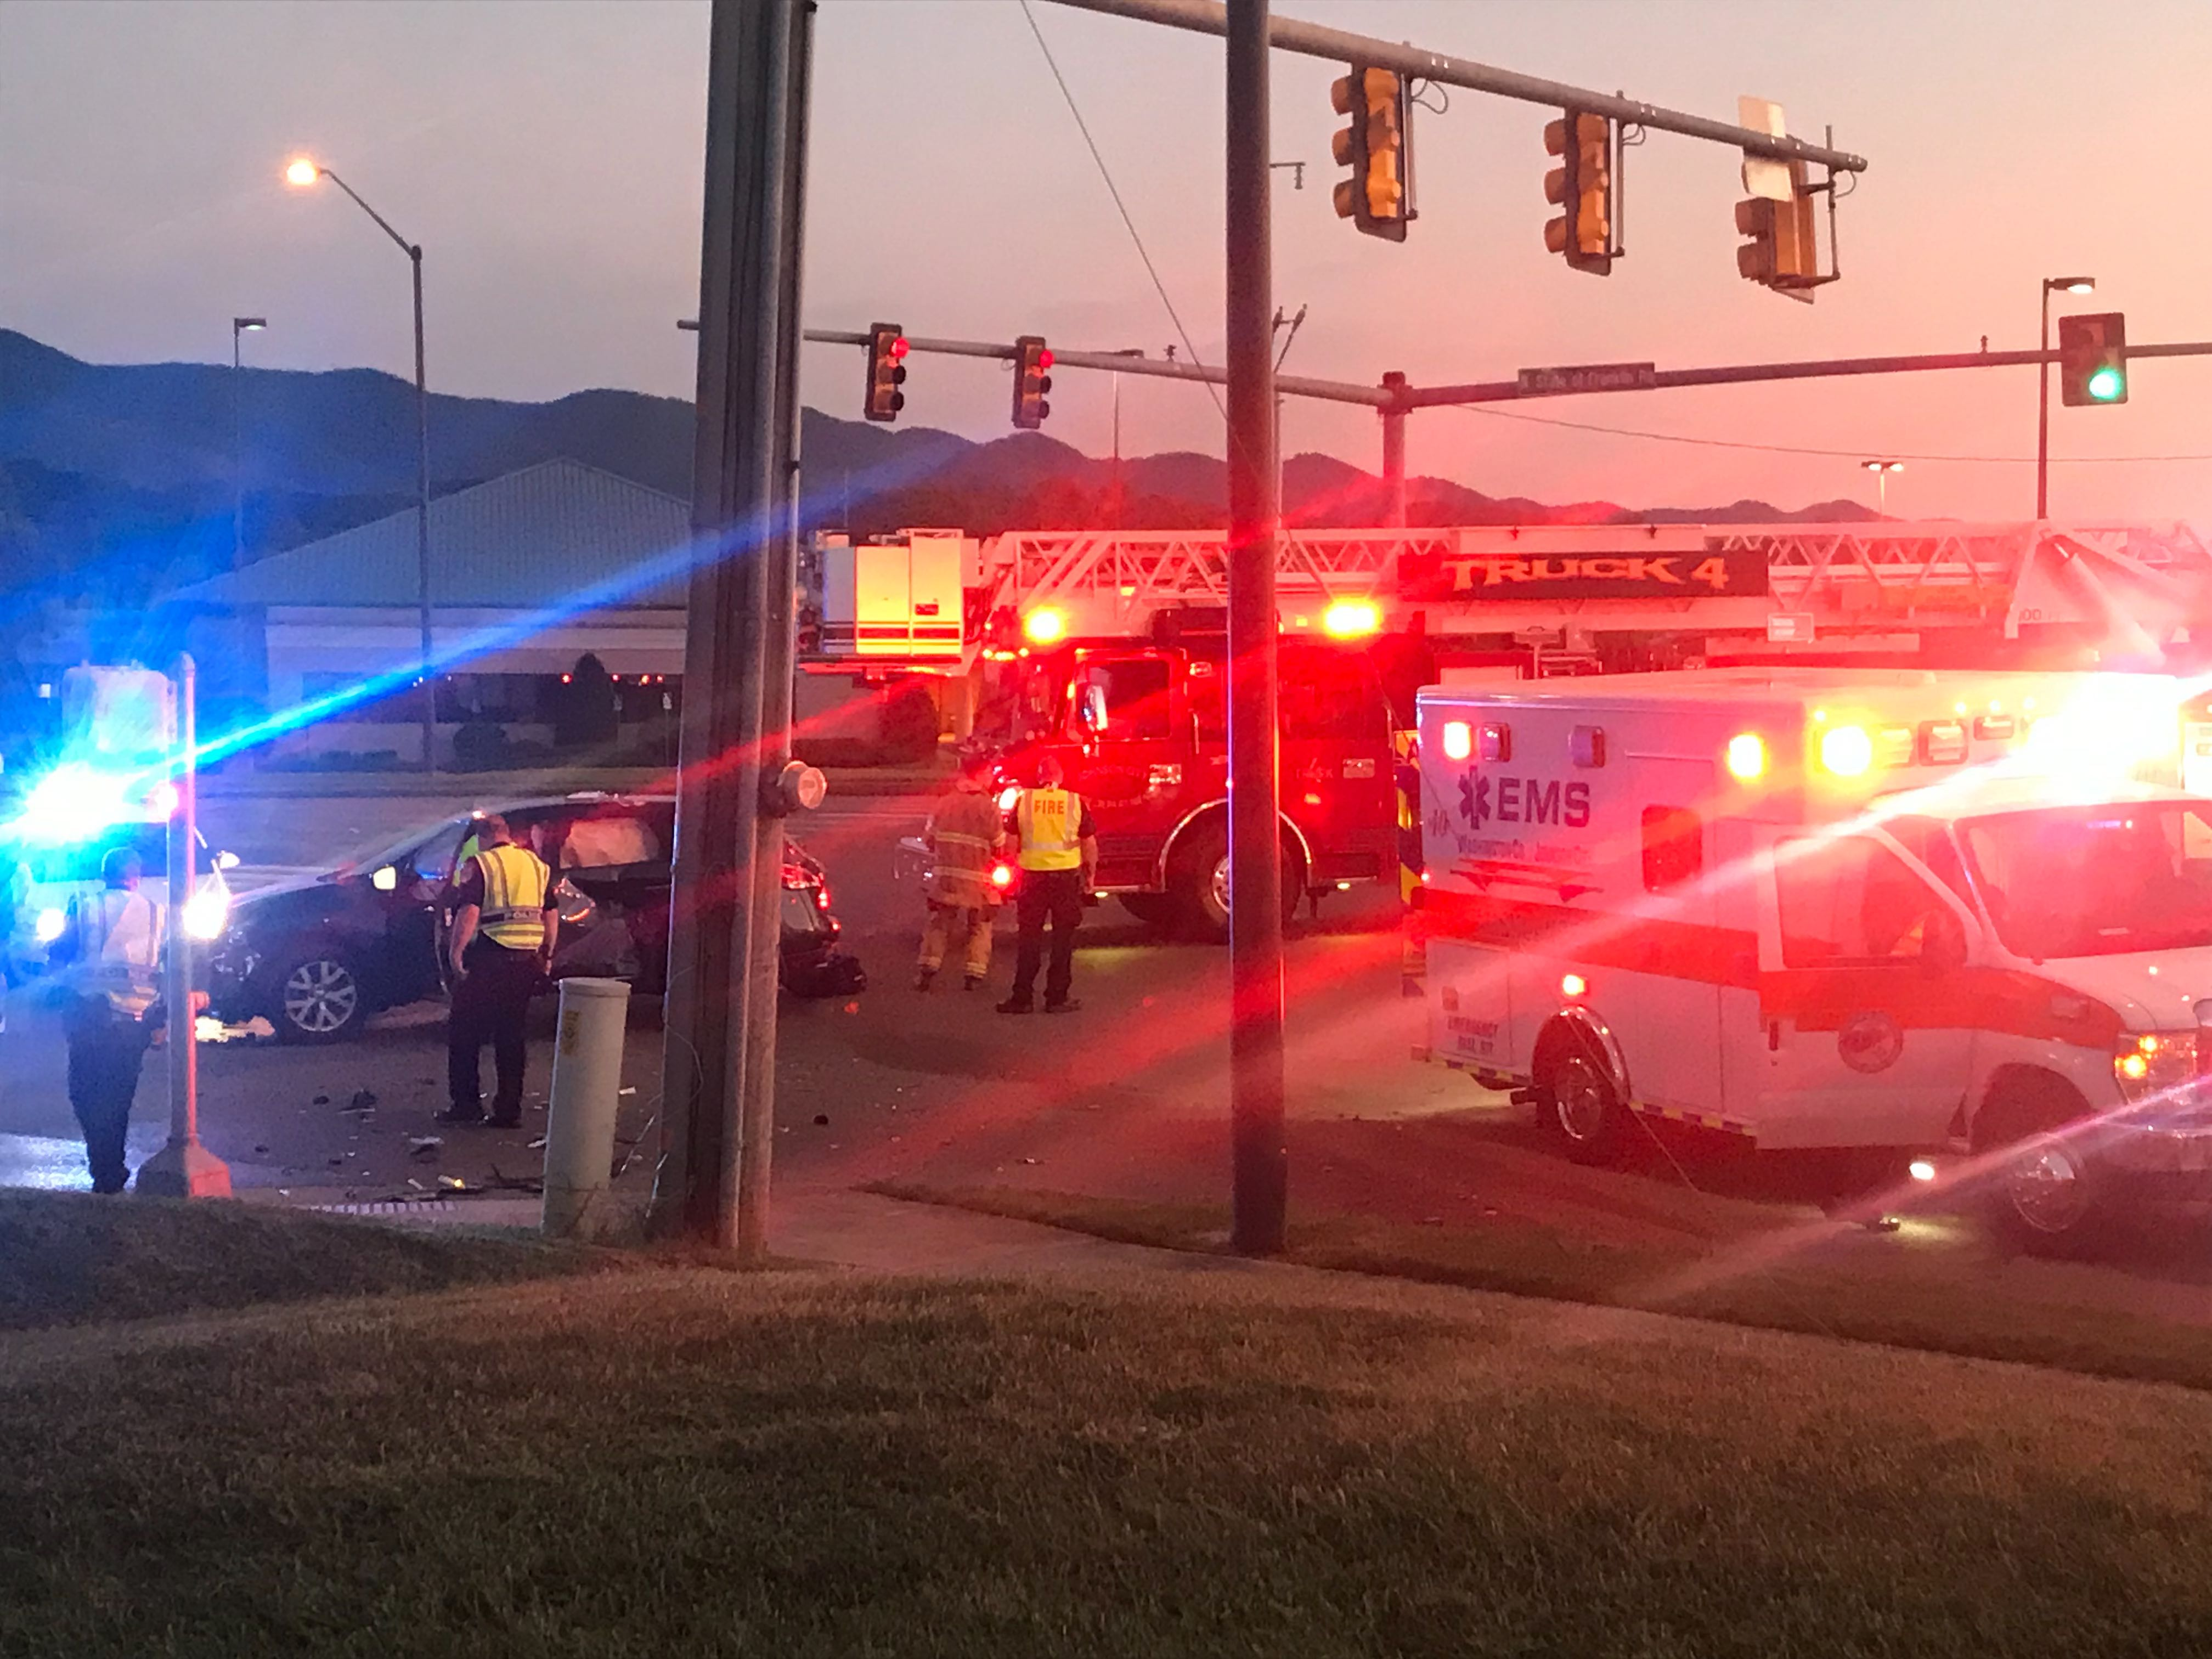 Minor injuries reported in crash in front of JCMC | WJHL